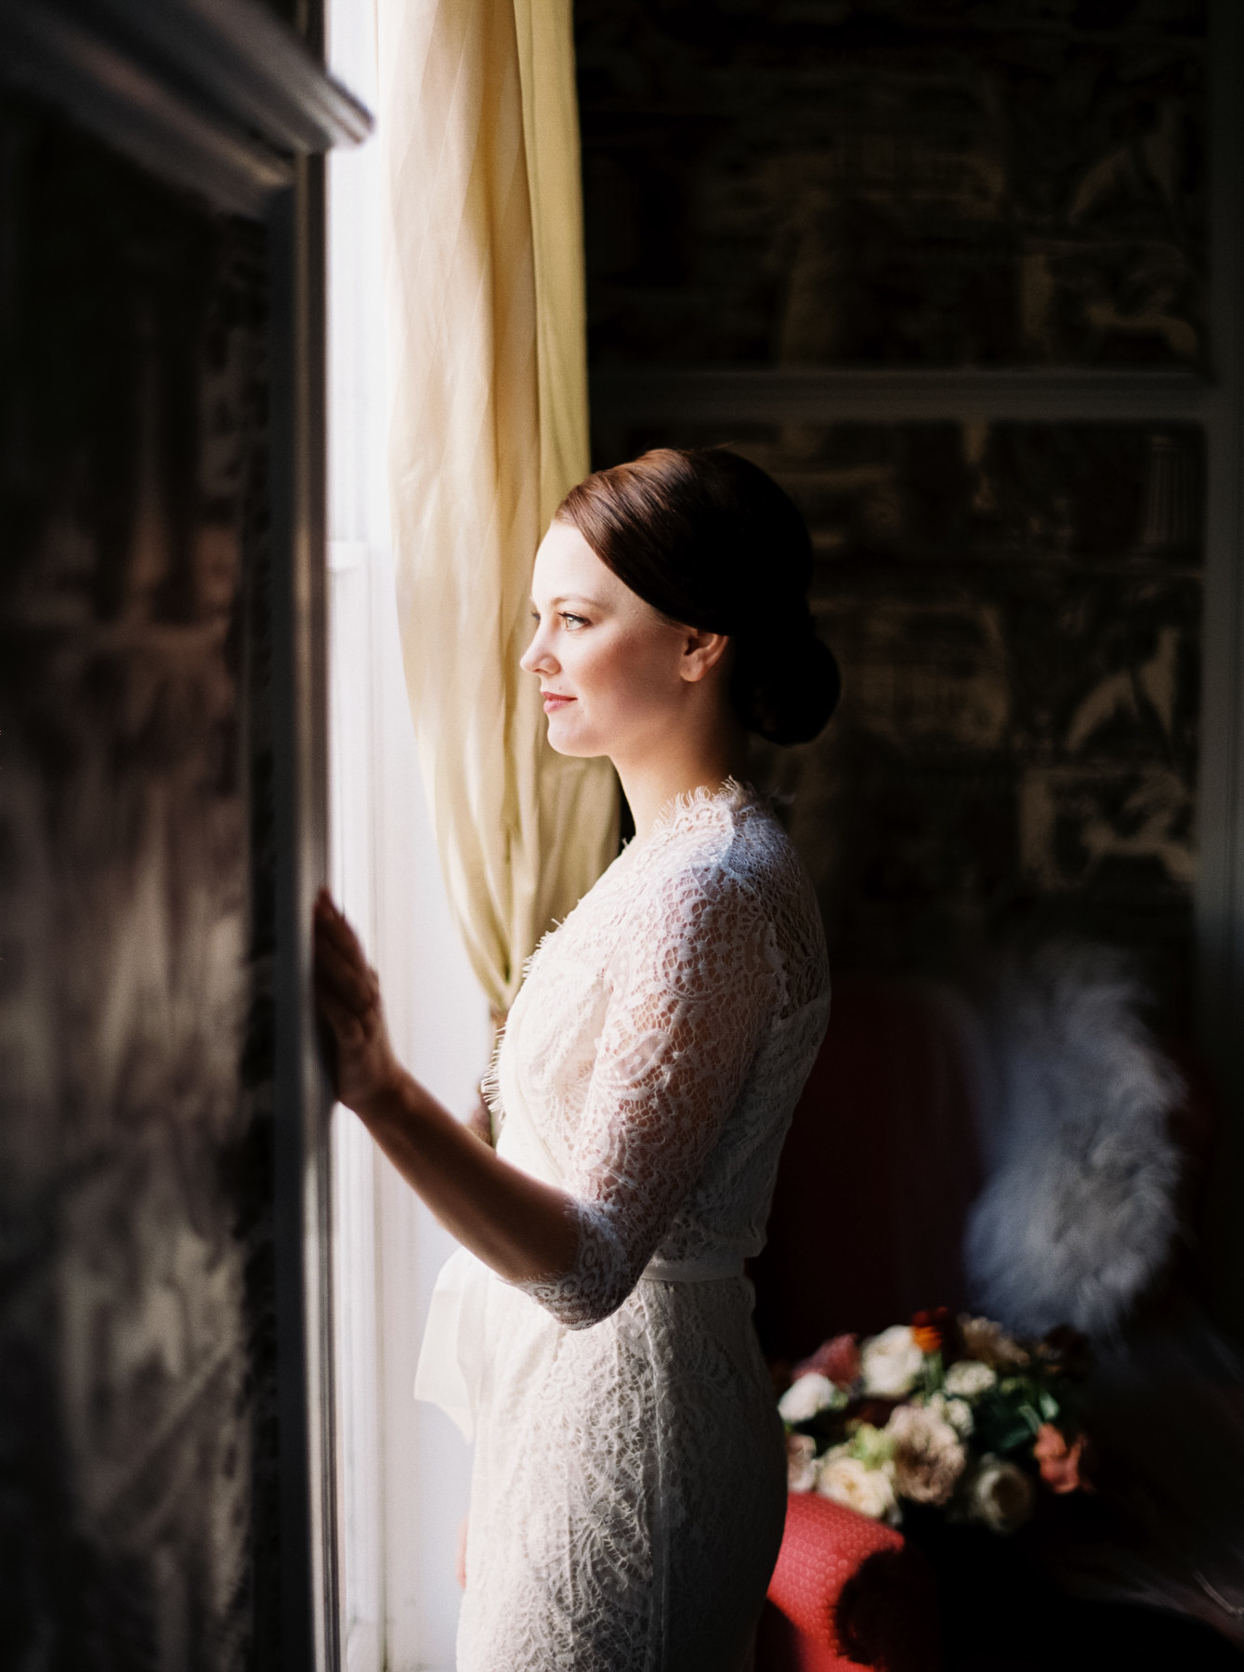 bride in lace dress looking out window